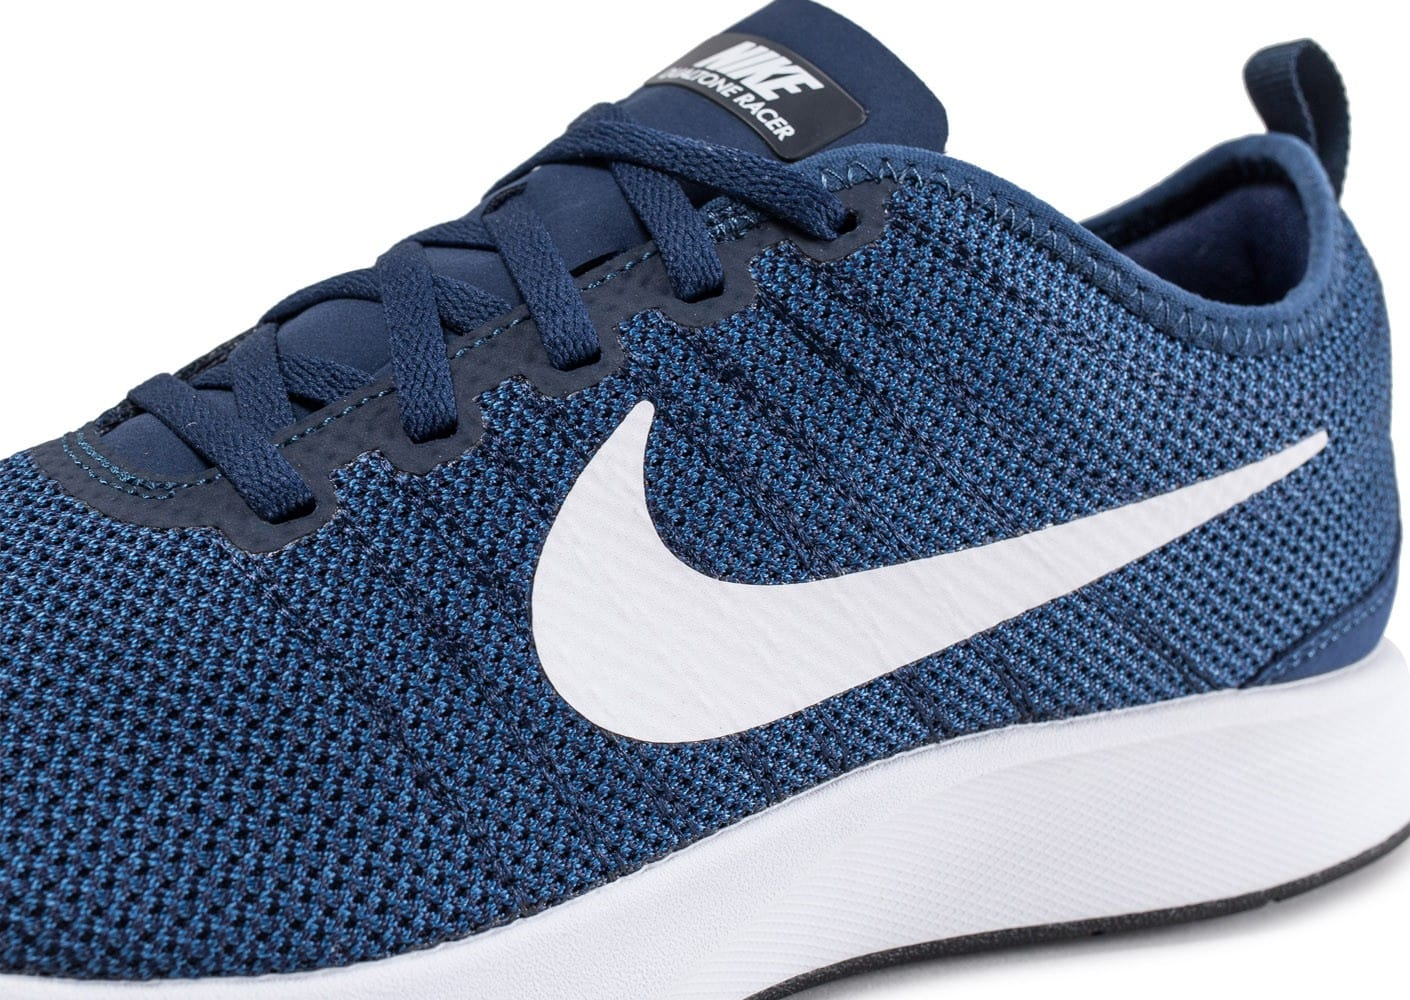 nike dualtone racer bleu marine chaussures homme chausport. Black Bedroom Furniture Sets. Home Design Ideas